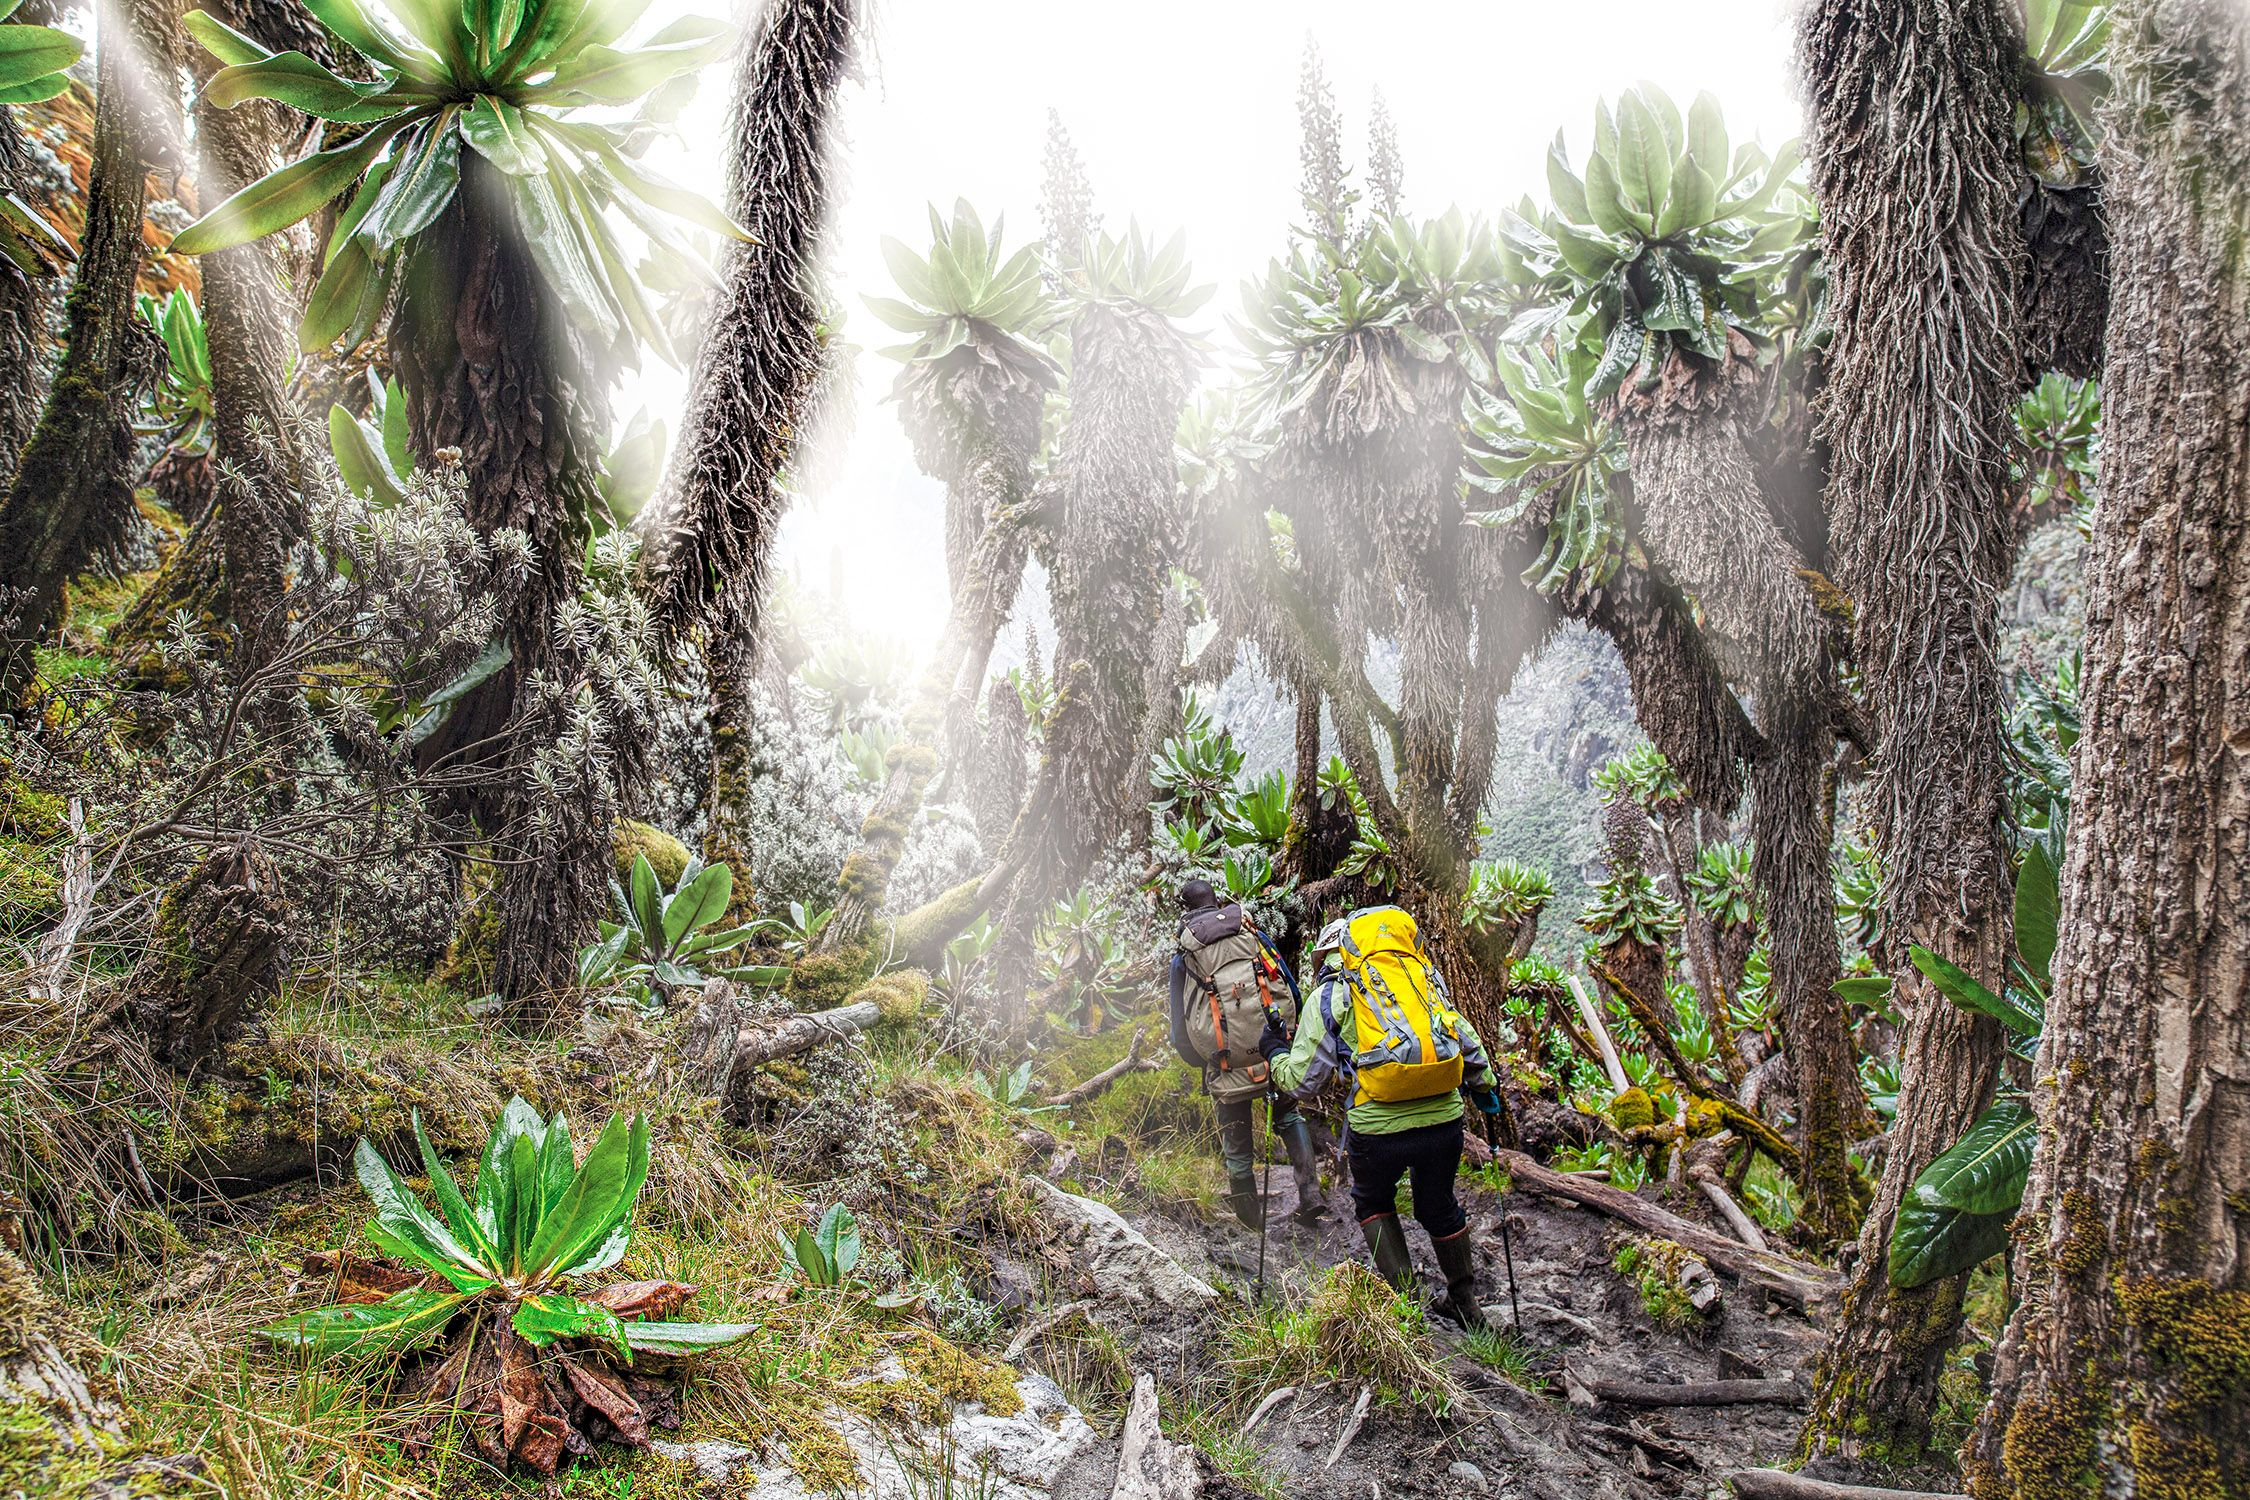 Ruwenzori expedition